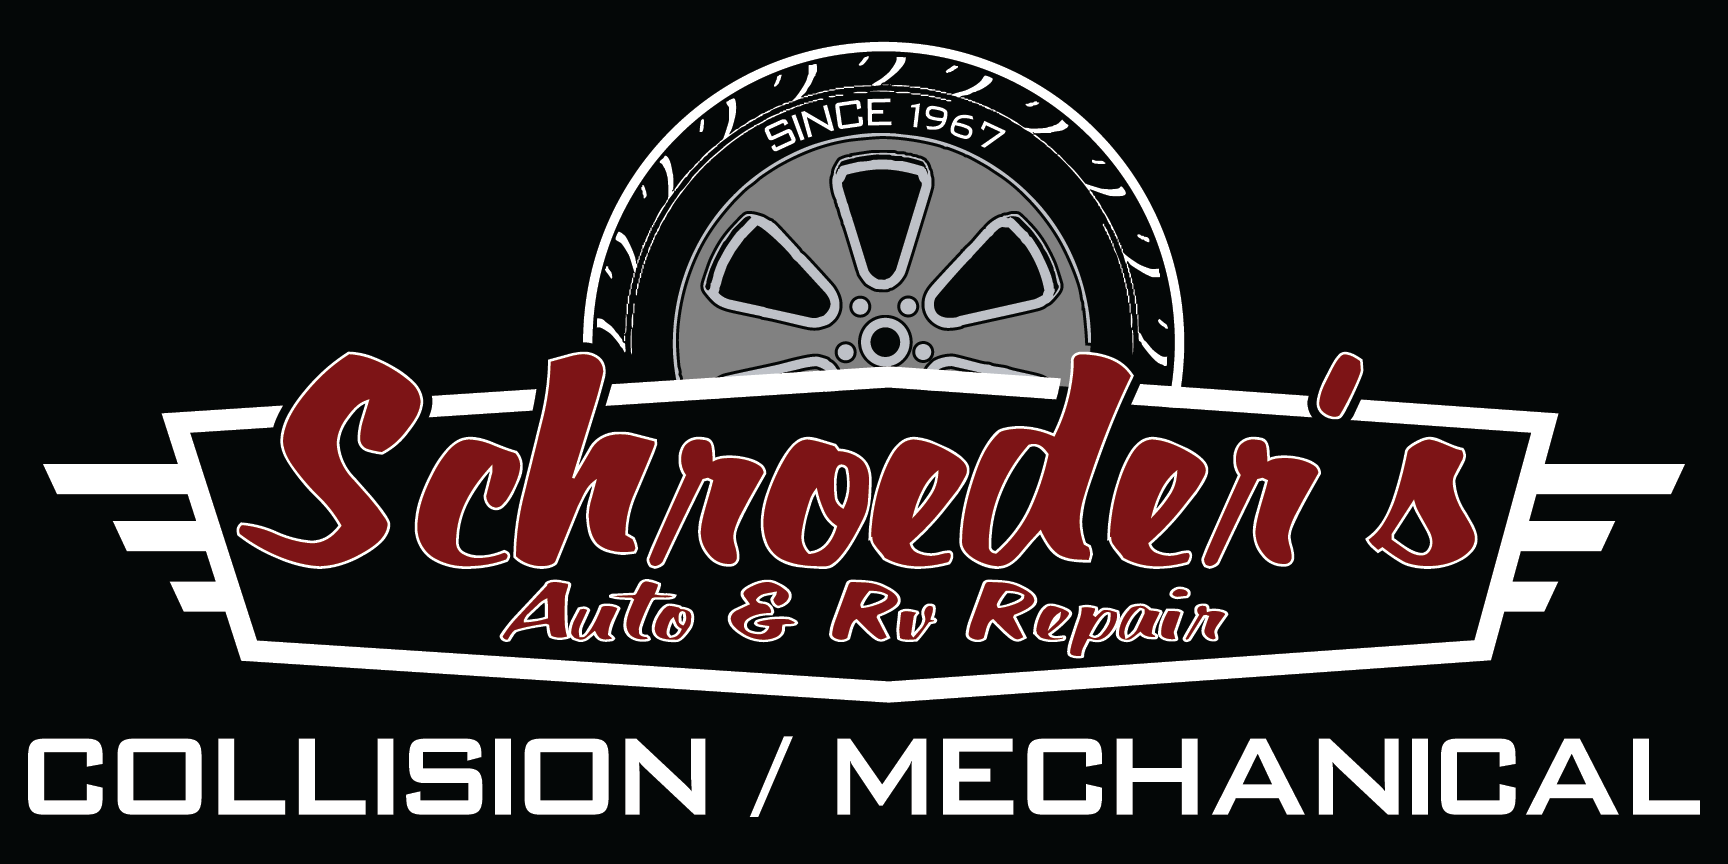 Schroeders Auto and RV